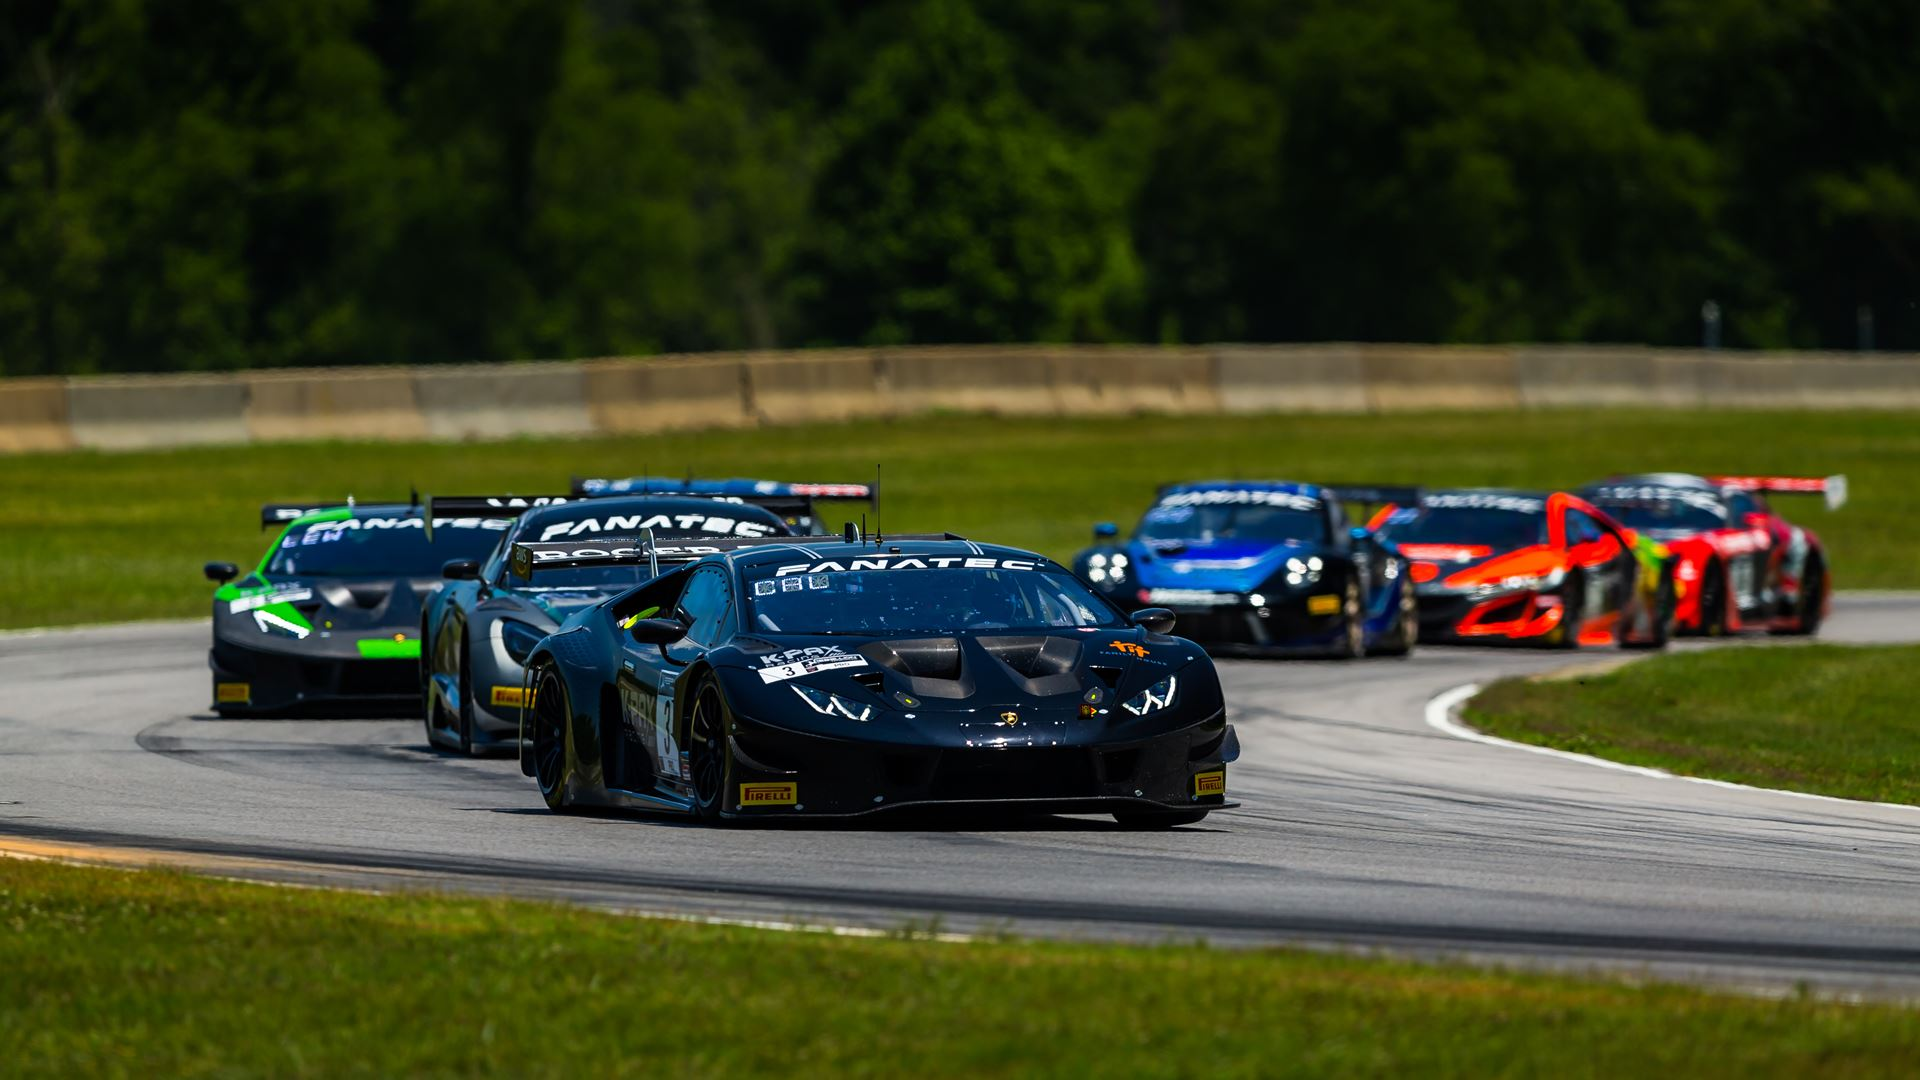 Lamborghini makes history with 100th GT3 victory thanks to another GT World Challenge America success - Image 1